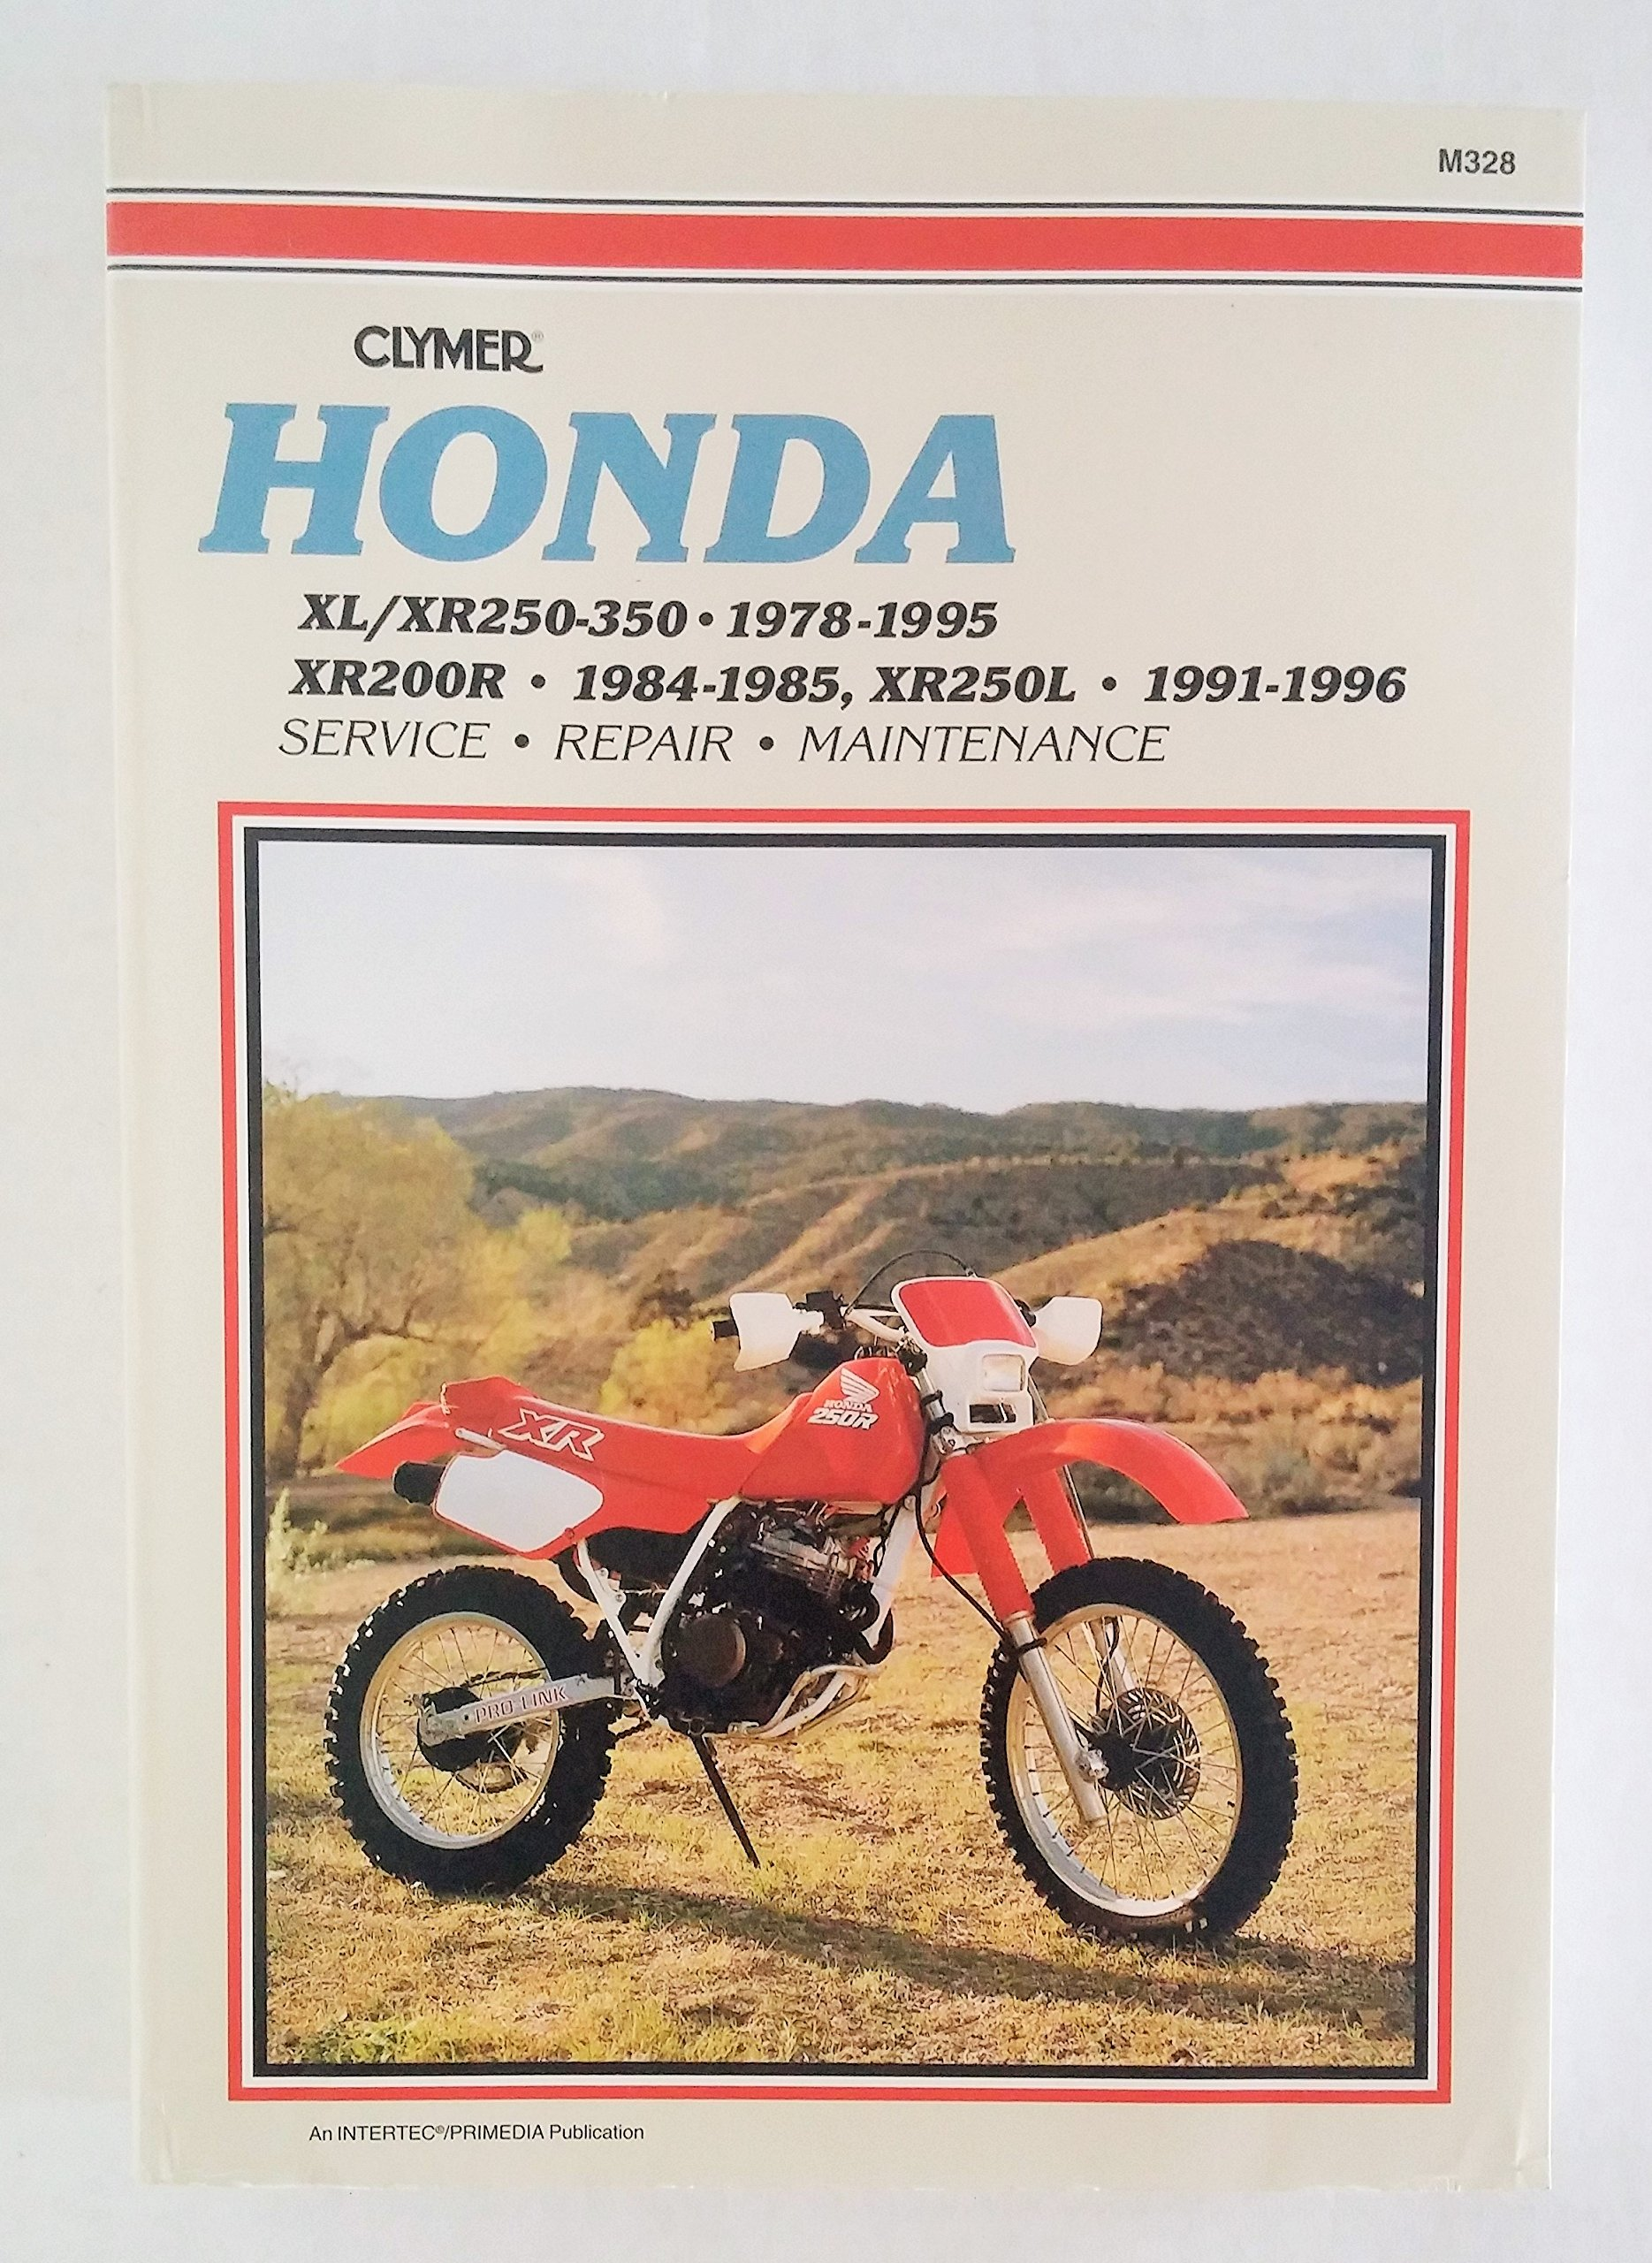 Honda XL/XR250-350 1978-1995, XR200R 1984-1985, XR250L 1991-1996 Service -  Repair - Maintenance Manual (Clymer) M328: Mark Jacobs, ...